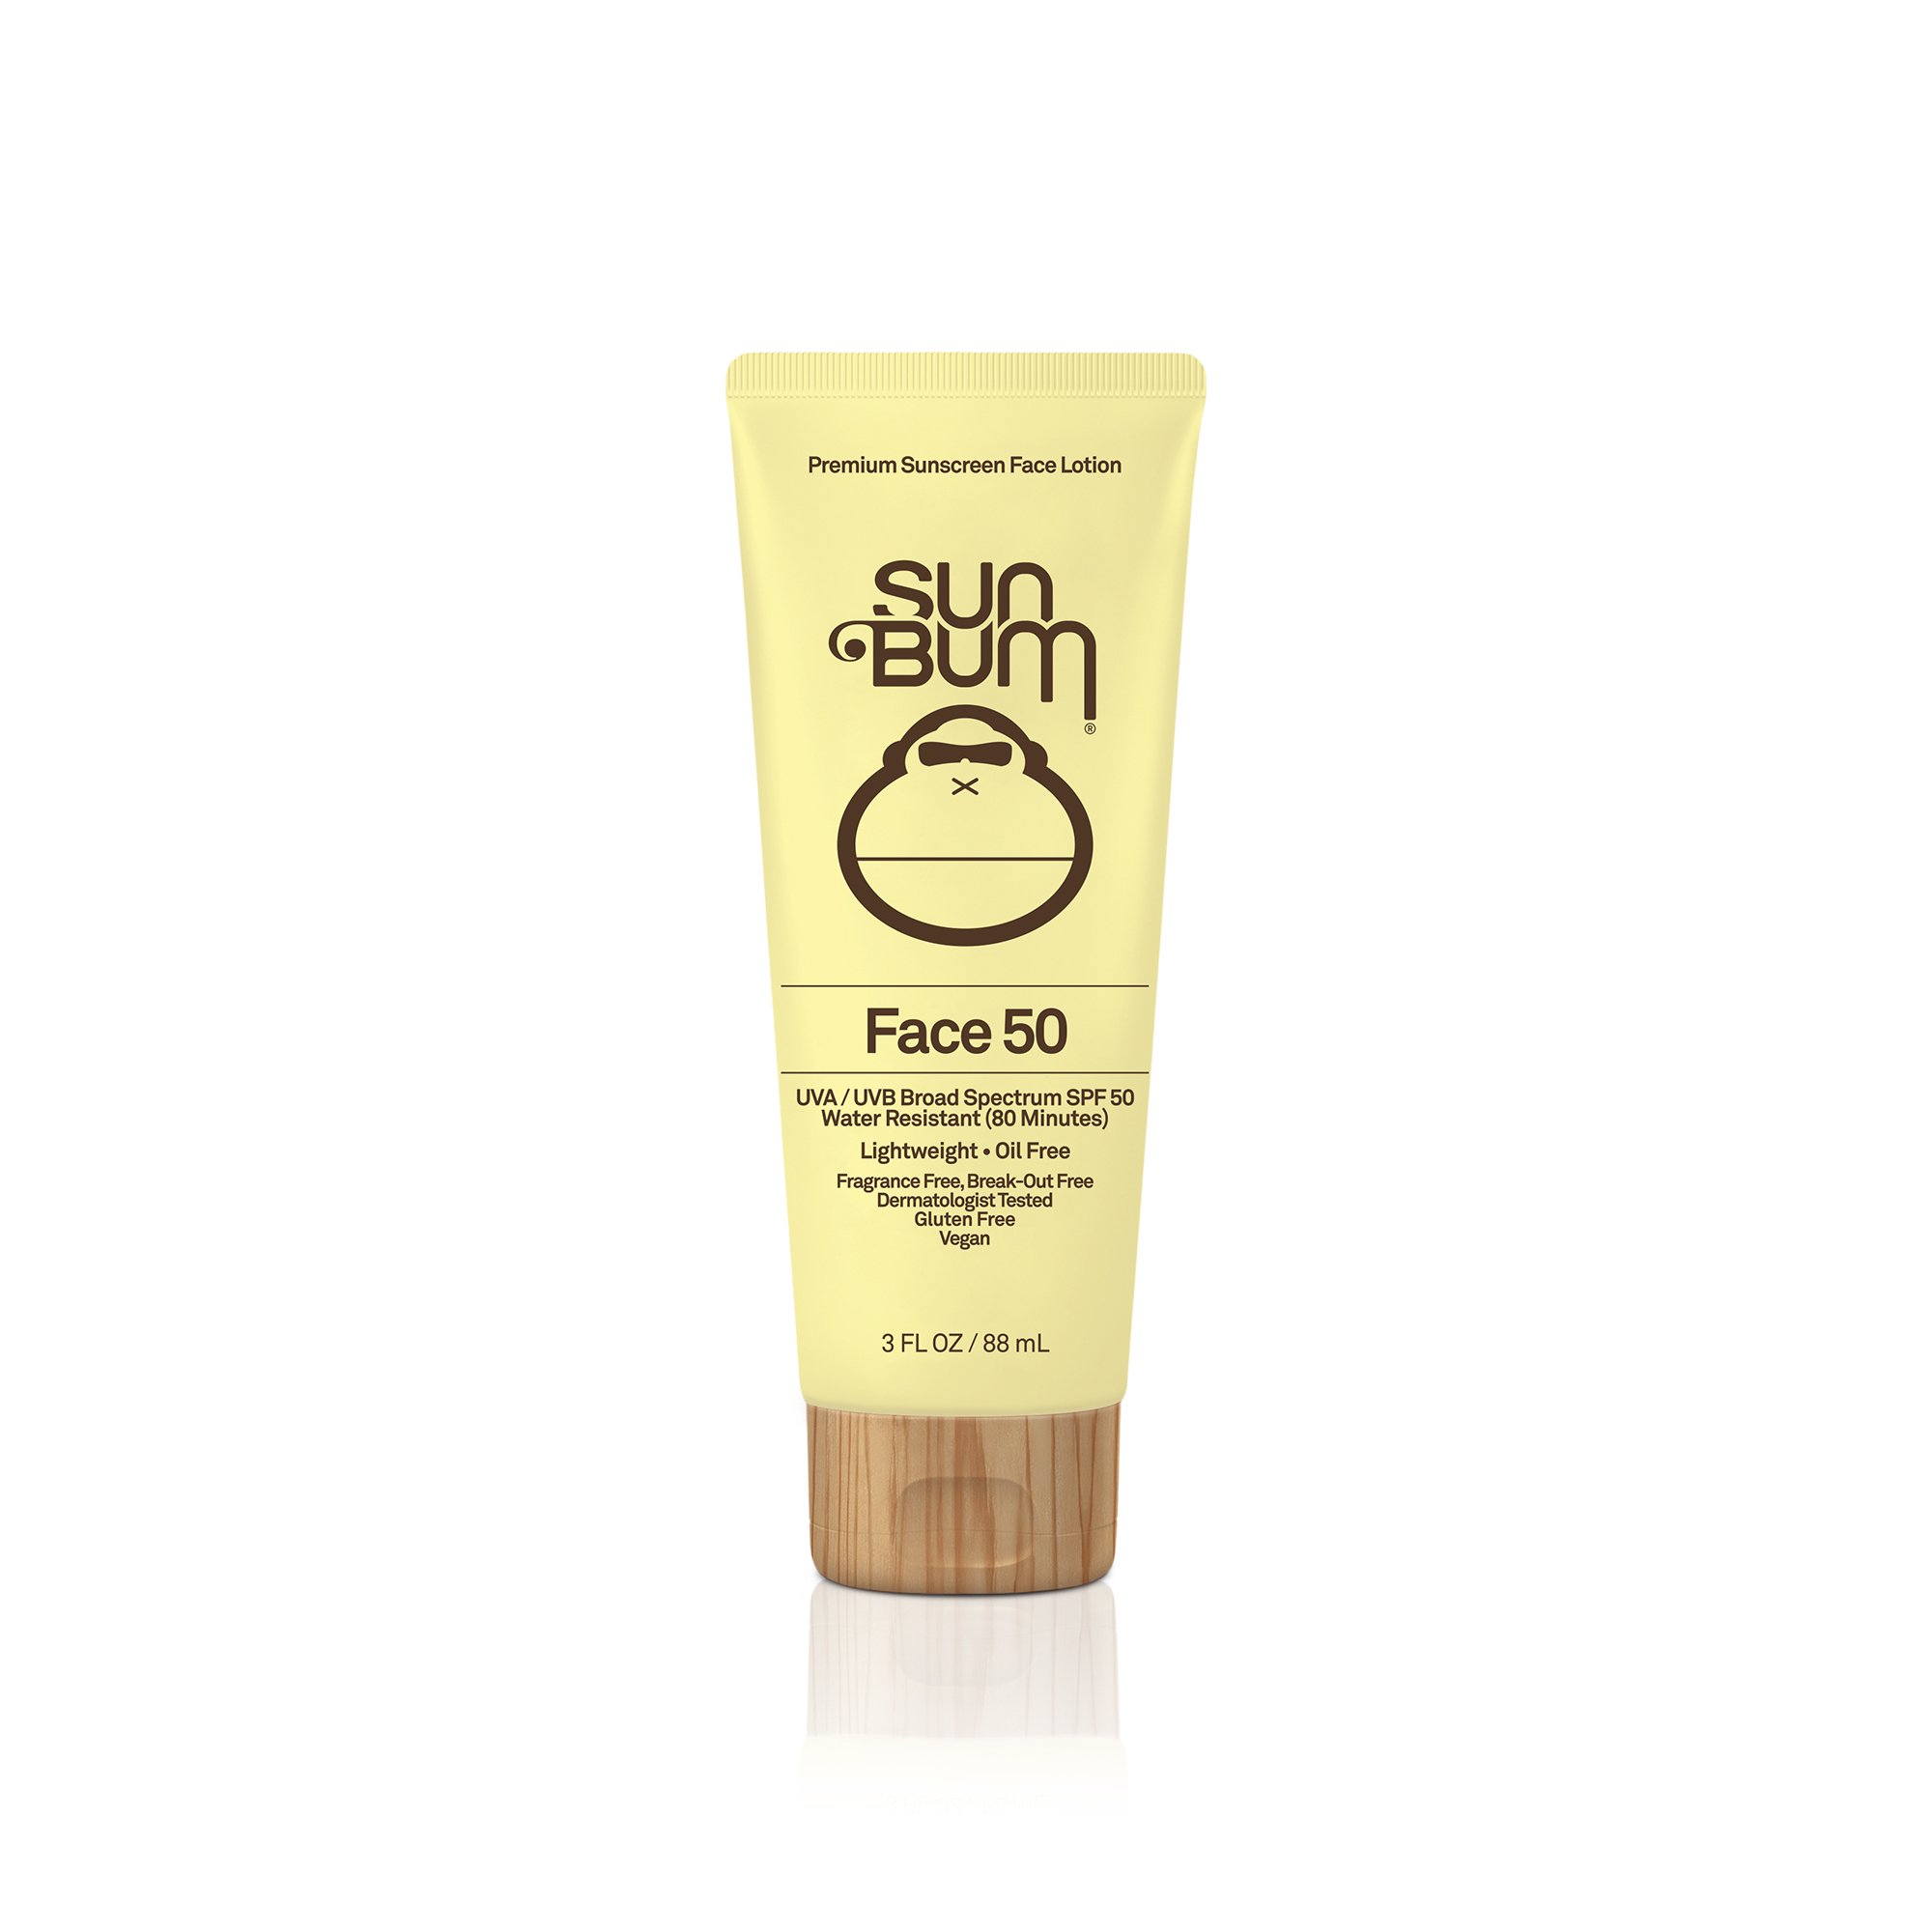 Sun Bum  Face Lotion SPF 50 |Oil Free and  Dermatologist Tested for Sensitive Skin| Reef Friendly Broad Spectrum UVA/UVB Protection |Water Resistant| Gluten Free, Vegan | 3 OZ  Bottle by Sun Bum